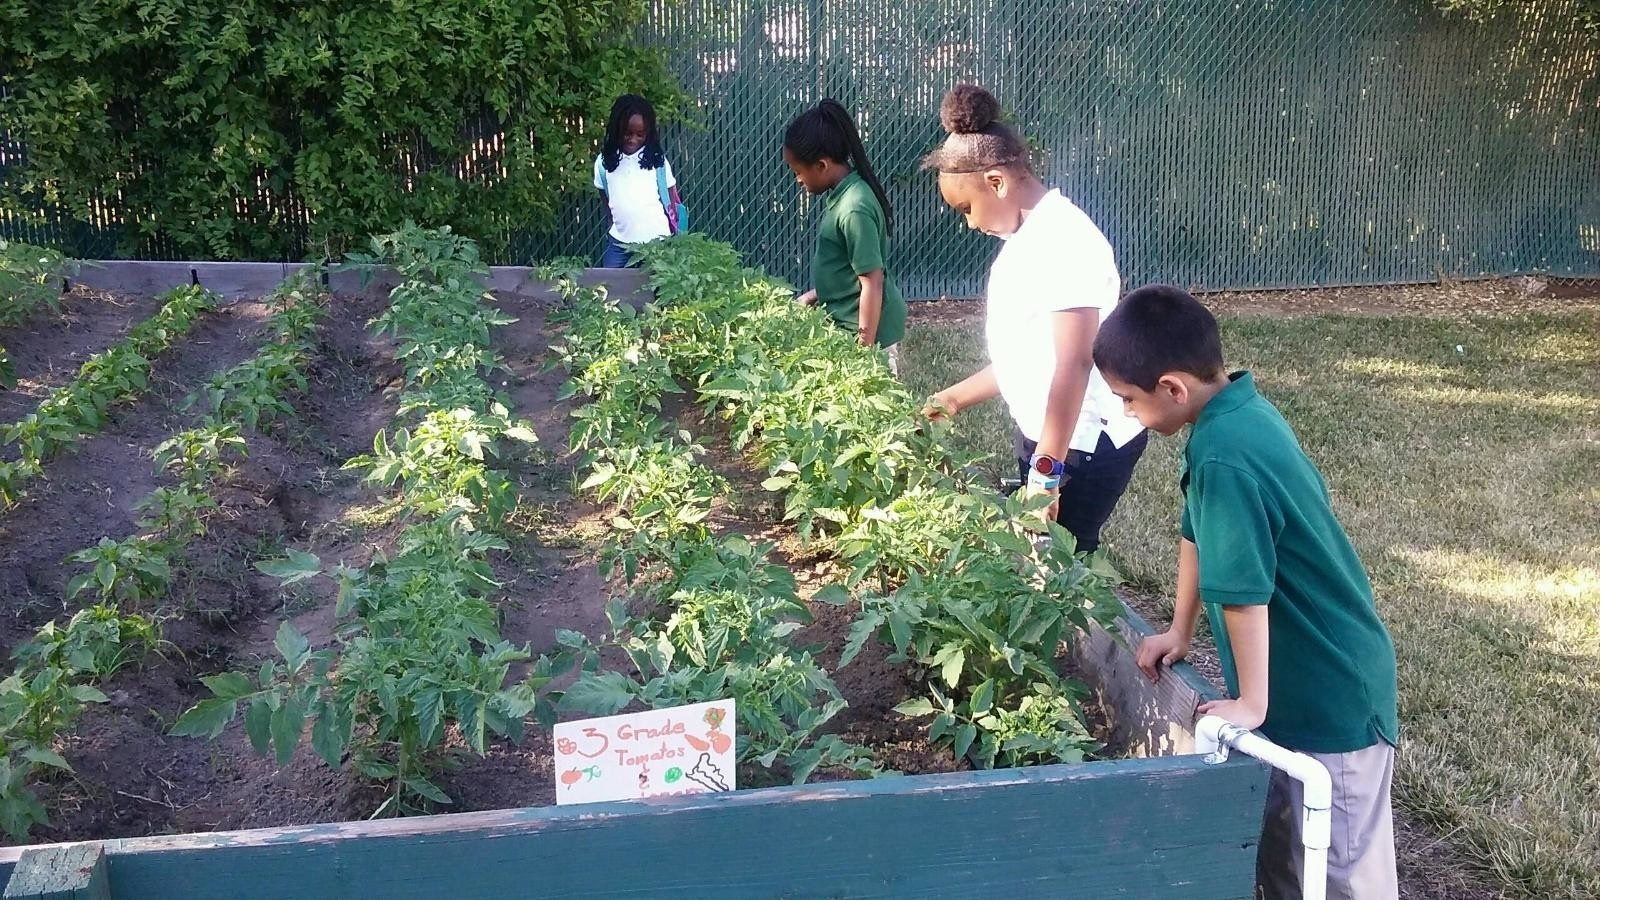 HLA Inspire Garden program supports sustainable gardening